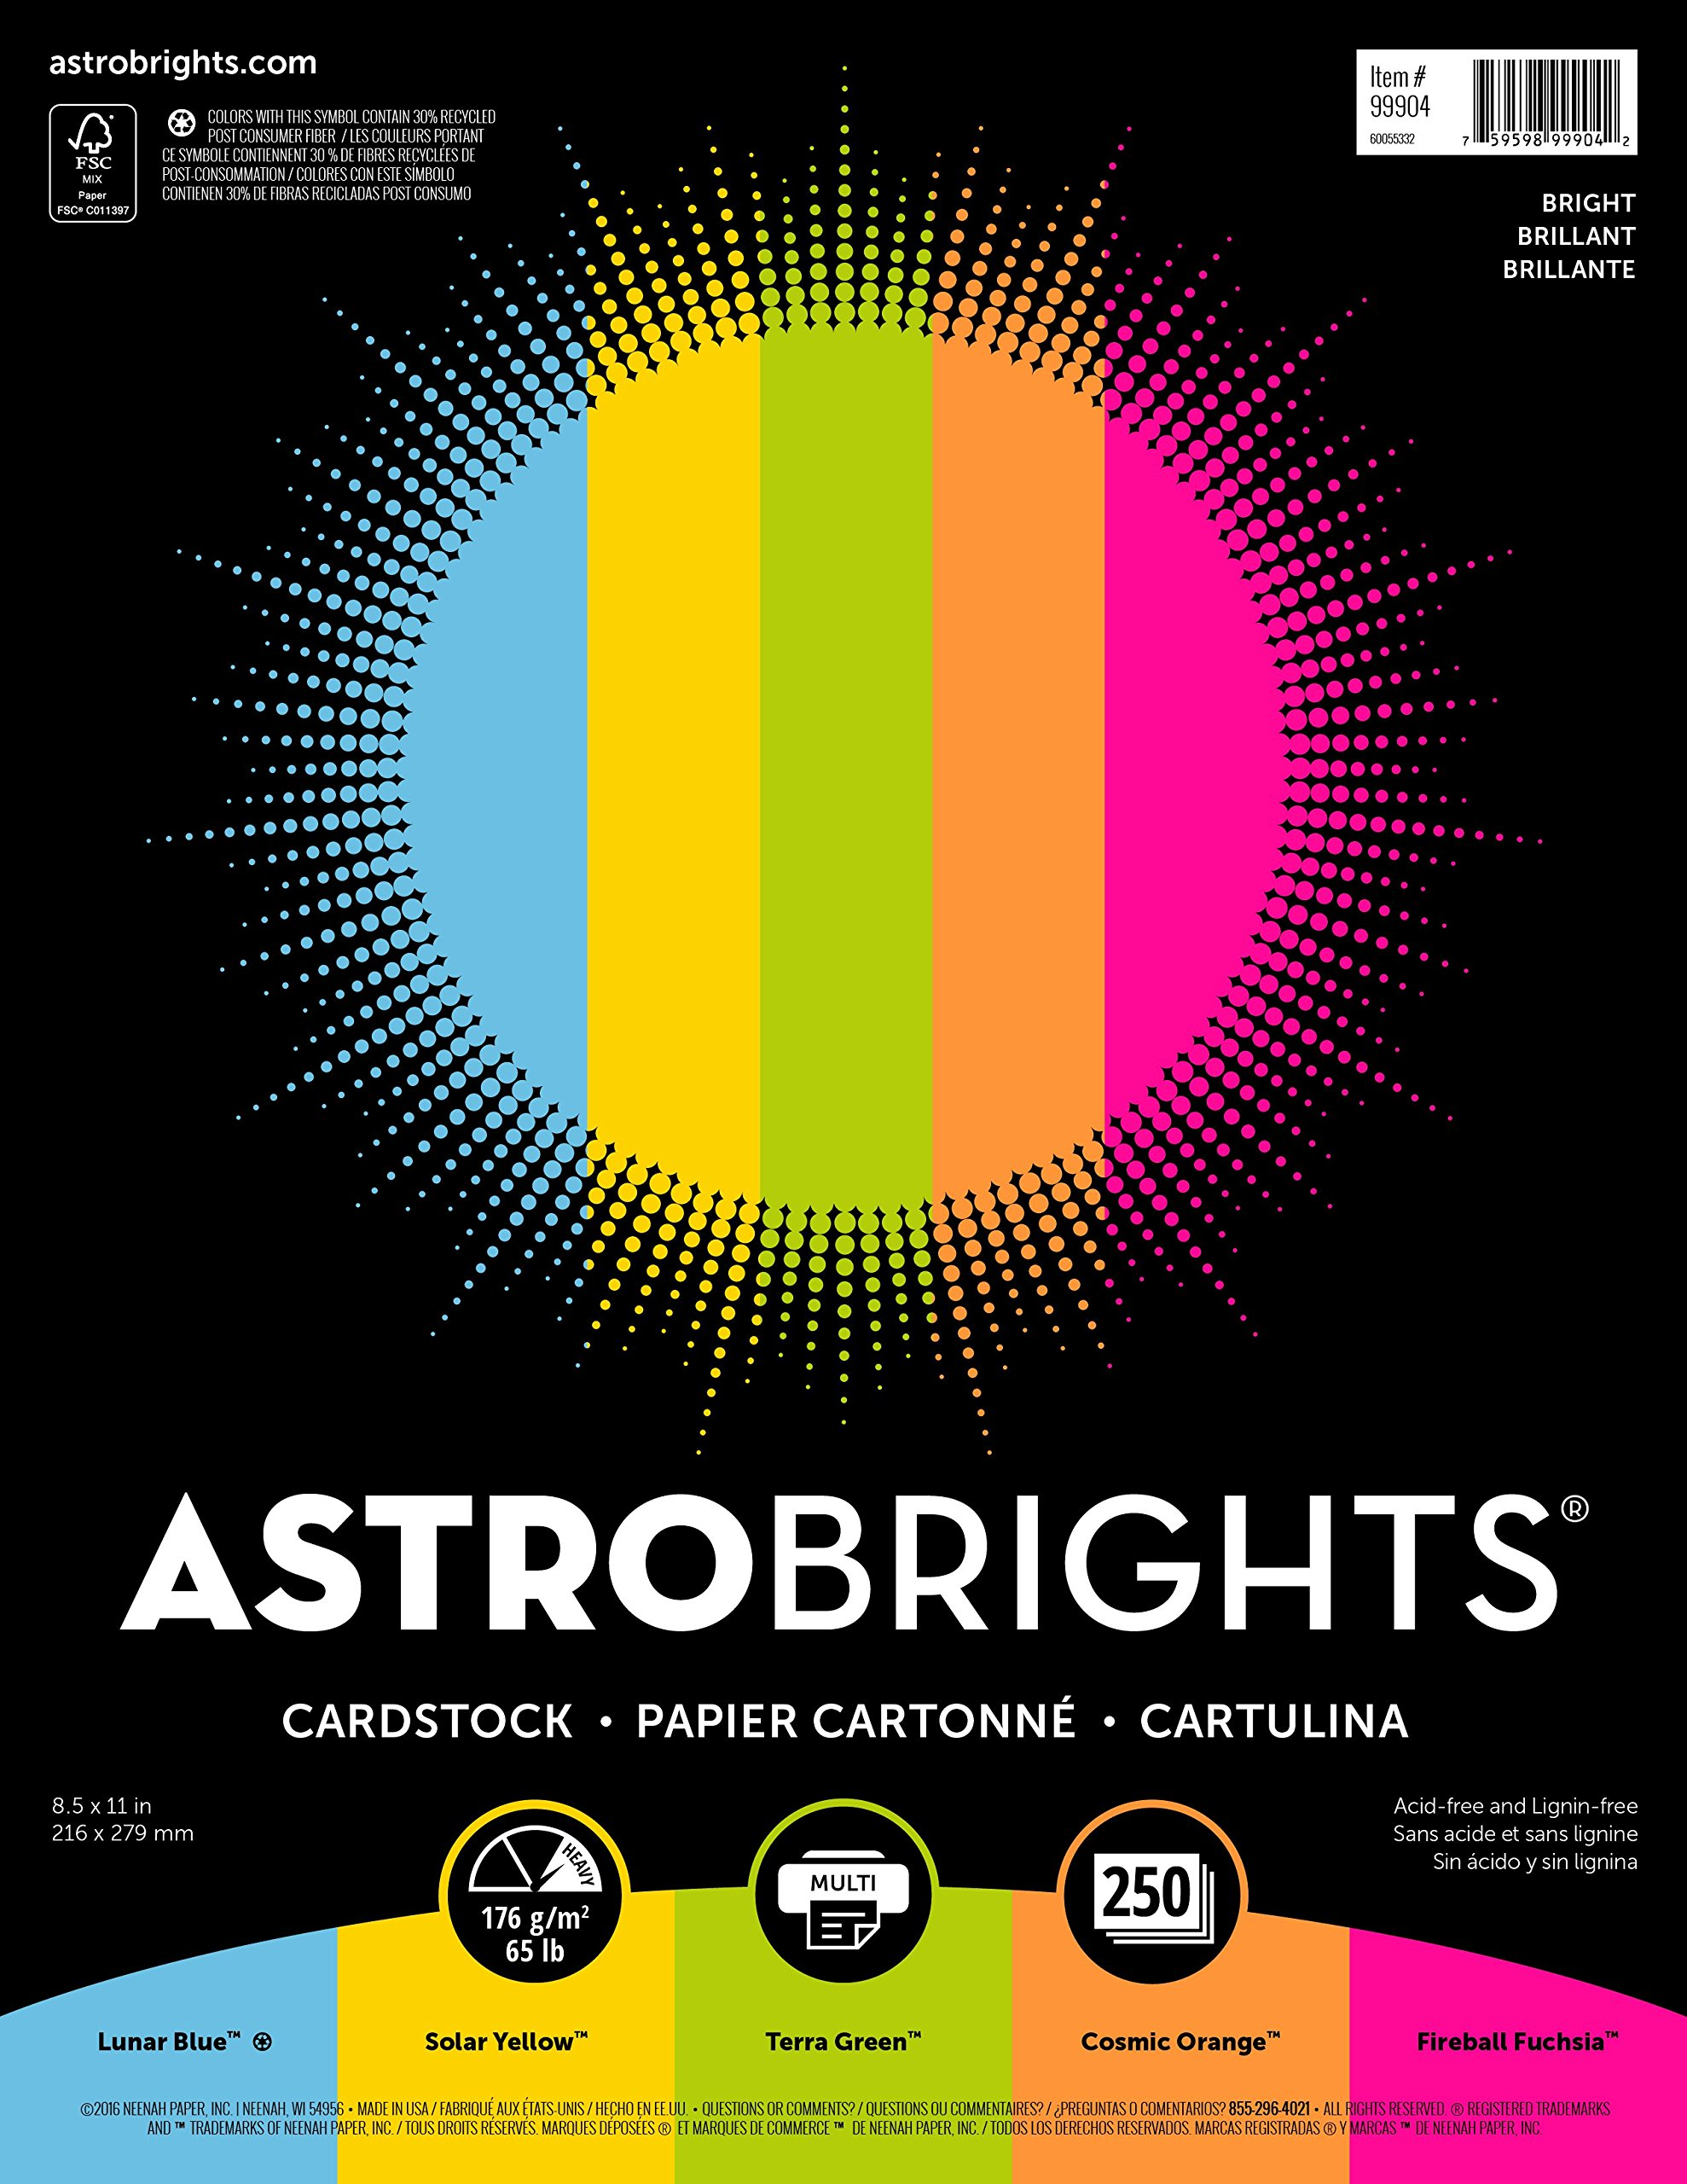 Astrobrights Colored Cardstock, 8.5'' x 11'', 65 lb/176 gsm, ''Bright'' 5-Color Assortment, 250 Sheets (99904)